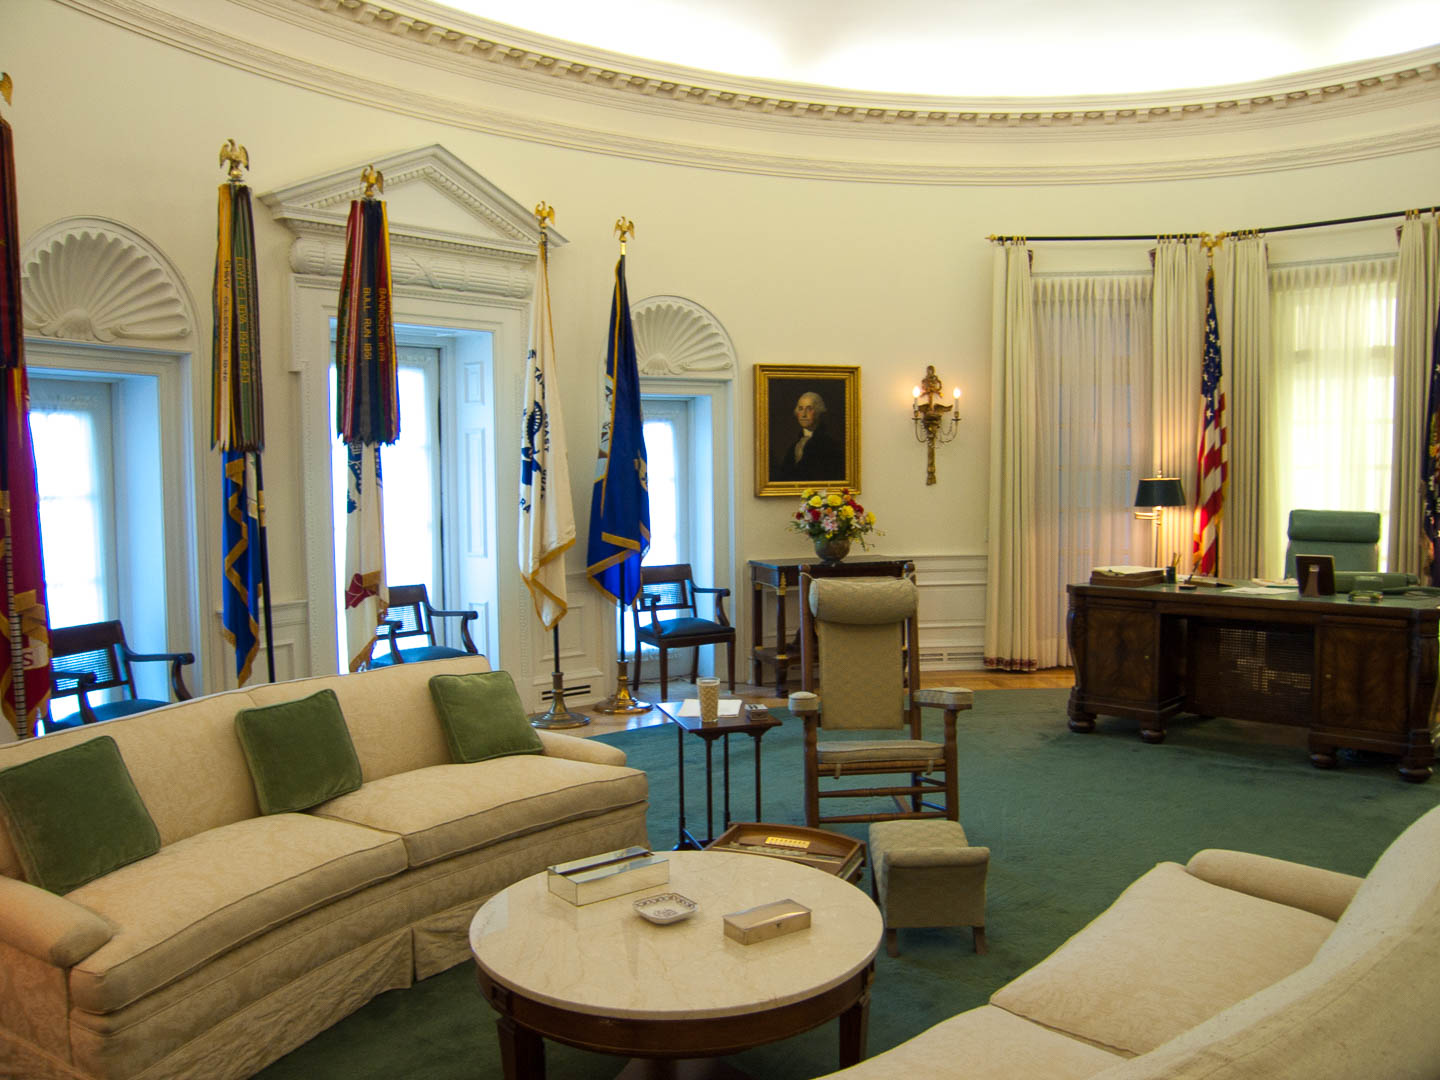 LBJ Oval Office replica in Austin, Texas